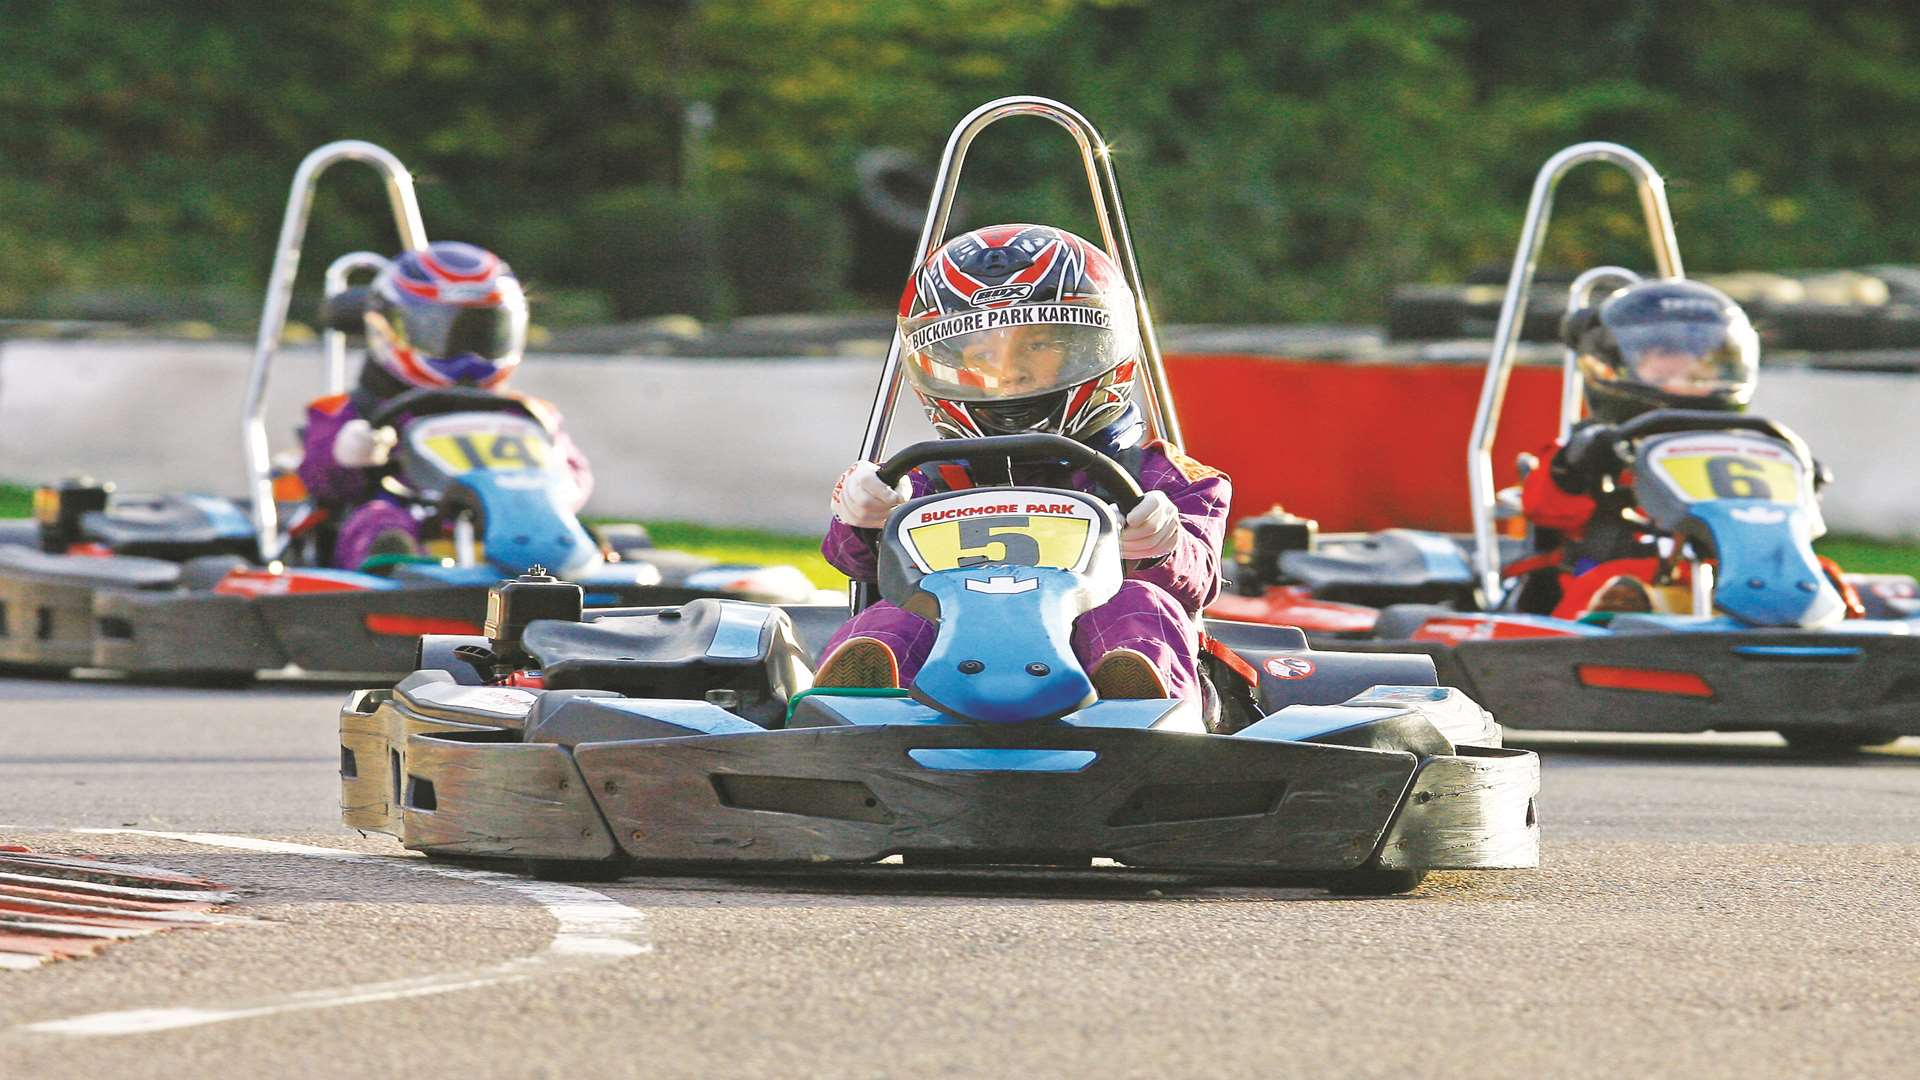 Buckmore Park Karting Death John Surtees Buys Buckmore Park Chatham Where Formula 1